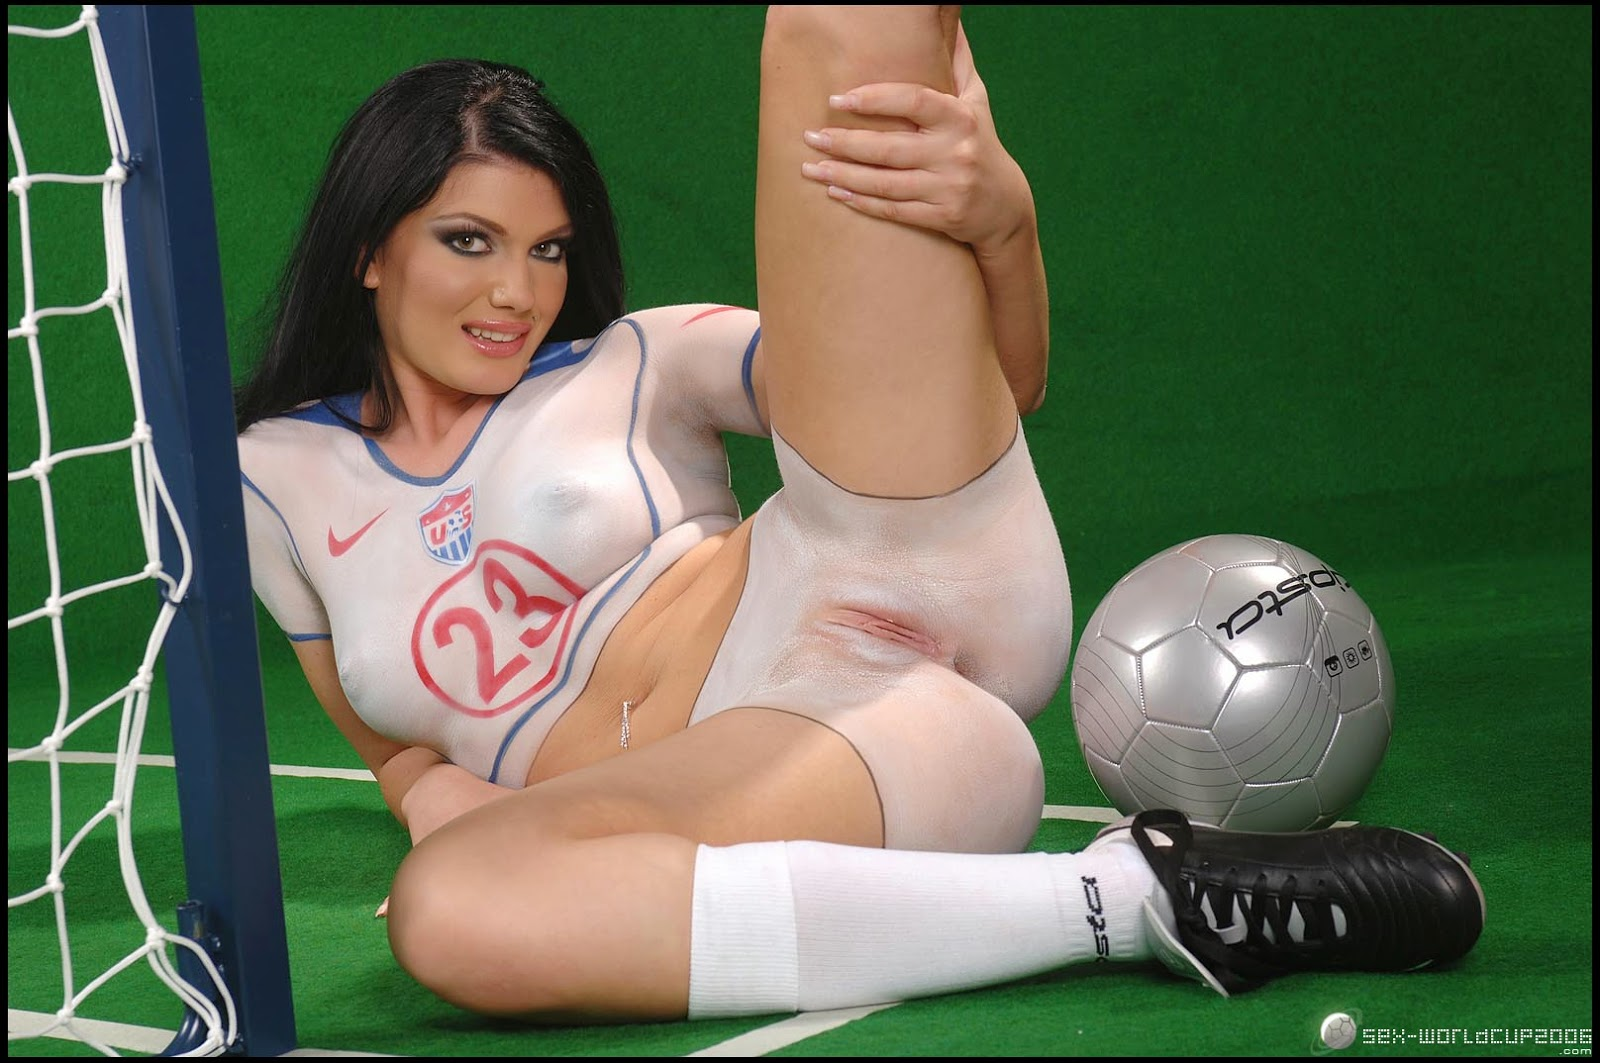 For that world cup nude body painting